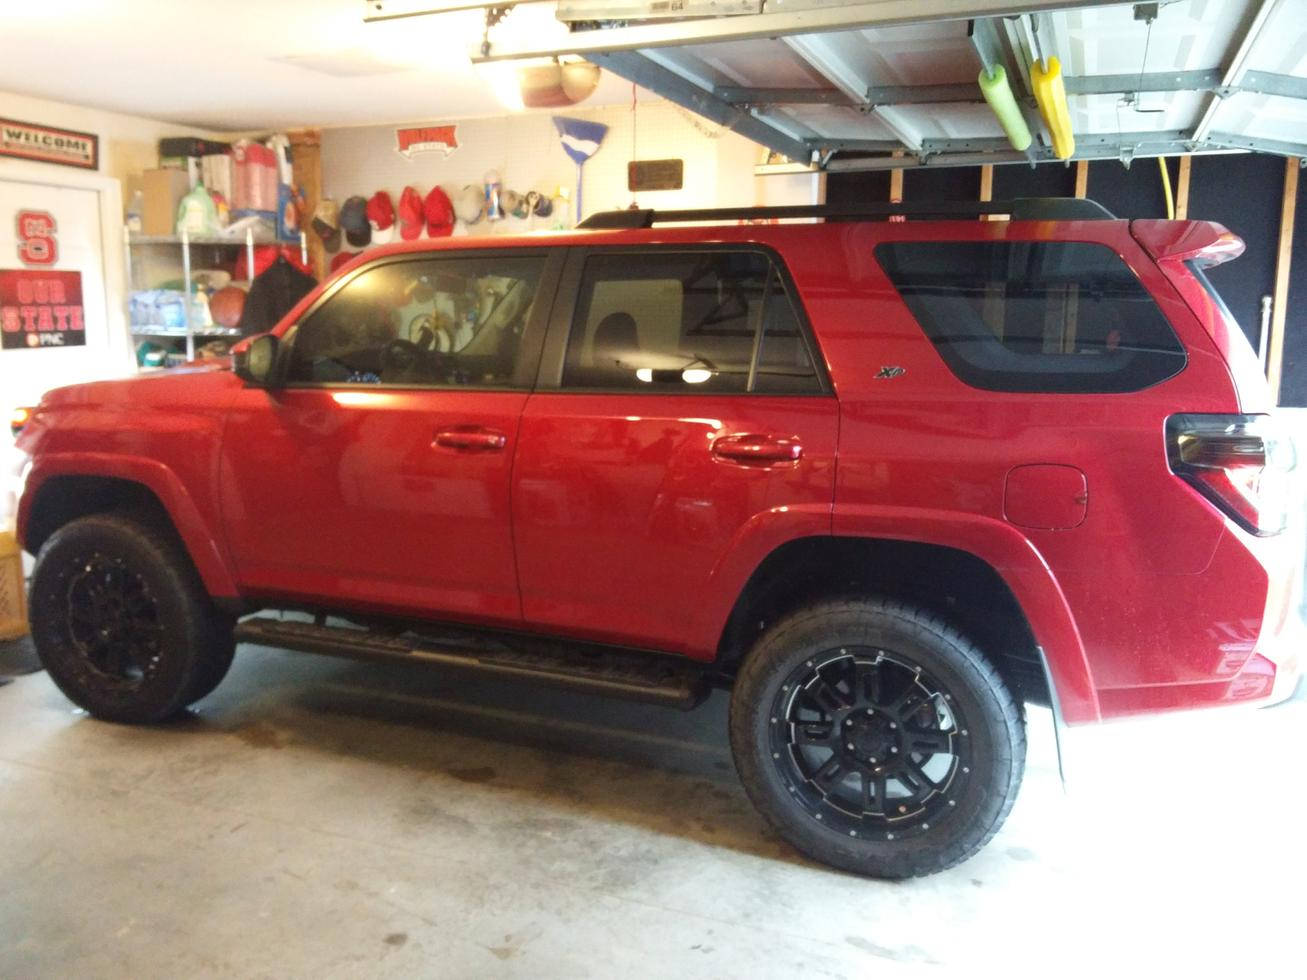 lift suggestions on 2016 xp page 5 toyota 4runner forum largest 4runner forum. Black Bedroom Furniture Sets. Home Design Ideas